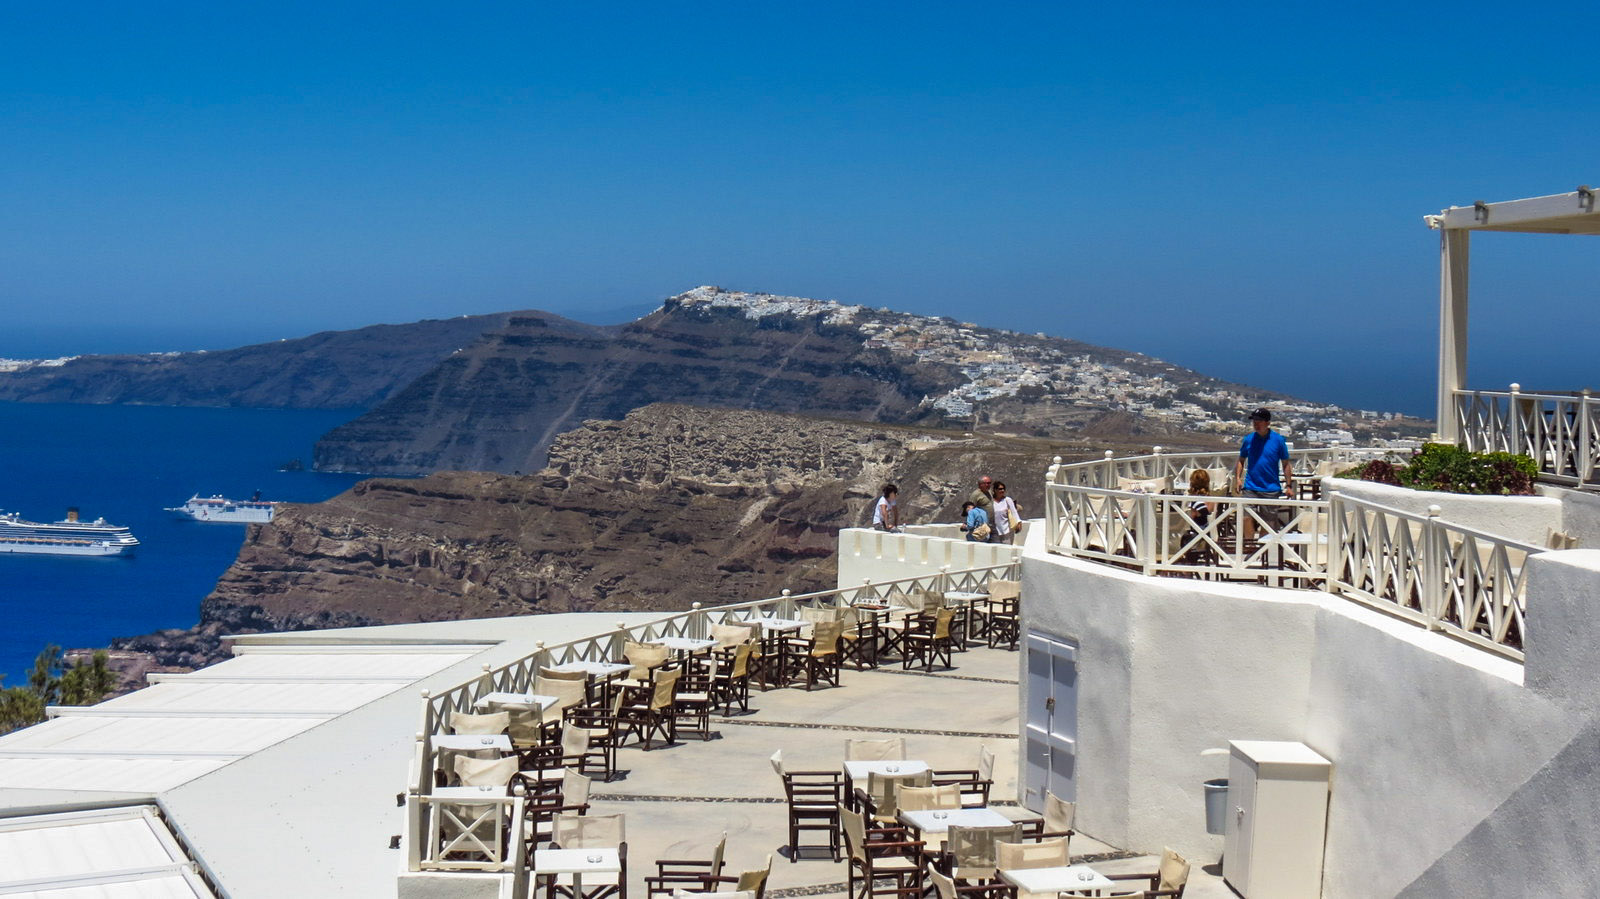 The view across the Island with views of Fira from  Santo Wines . Several cruise ships are moored in the lagoon below. Photo cred:  Flashpackatforty